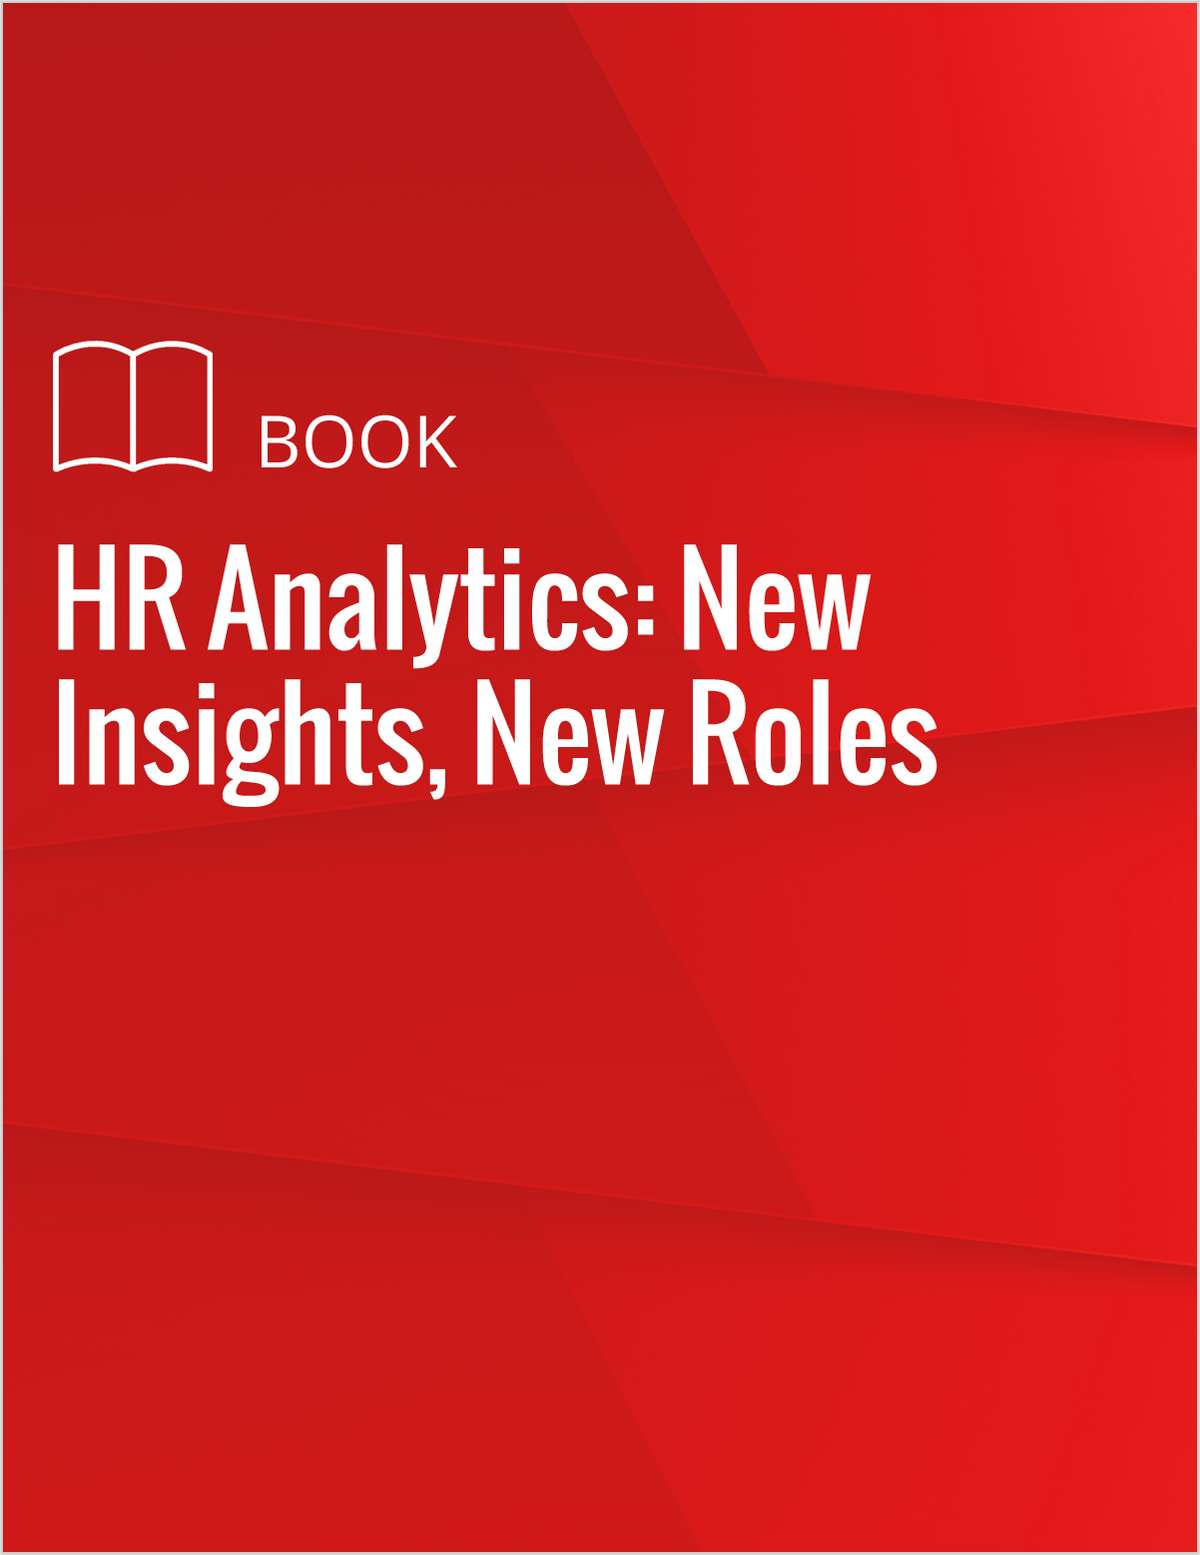 HR Analytics: New Insights, New Roles